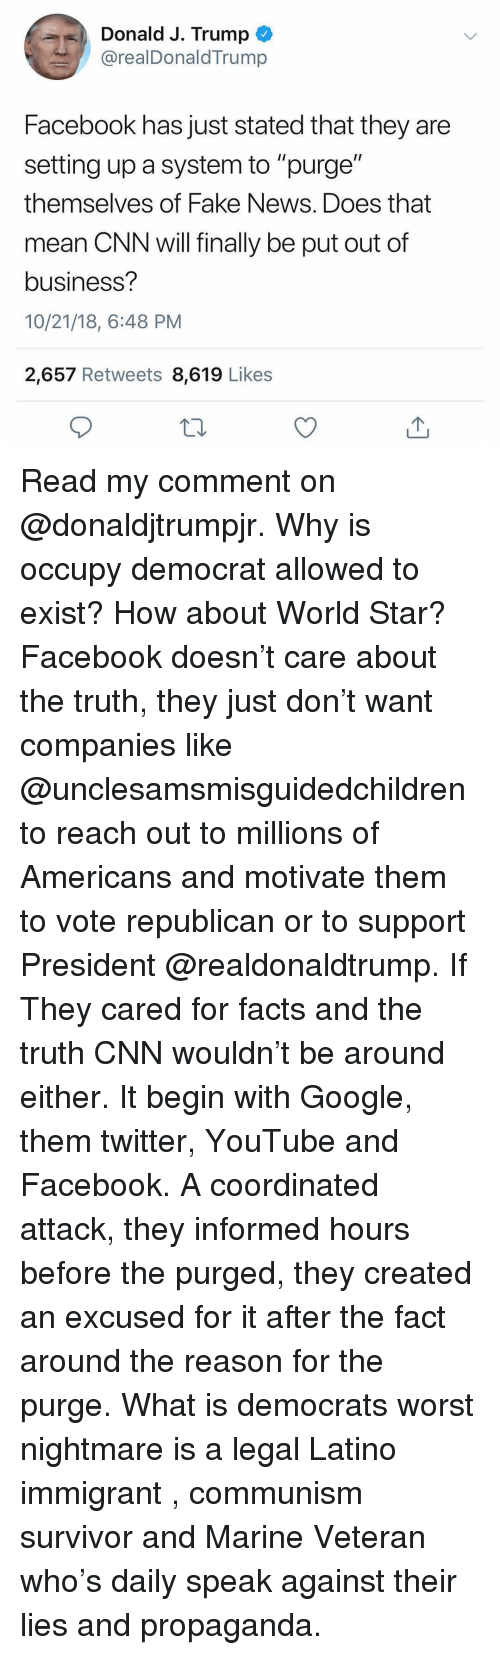 """cnn.com, Facebook, and Facts: Donald J. Trump  @realDonaldTrump  Facebook has just stated that they are  setting up a system to """"purge""""  themselves of Fake News. Does that  mean CNN will finally be put out of  business?  10/21/18, 6:48 PM  2,657 Retweets 8,619 Likes Read my comment on @donaldjtrumpjr. Why is occupy democrat allowed to exist? How about World Star? Facebook doesn't care about the truth, they just don't want companies like @unclesamsmisguidedchildren to reach out to millions of Americans and motivate them to vote republican or to support President @realdonaldtrump. If They cared for facts and the truth CNN wouldn't be around either. It begin with Google, them twitter, YouTube and Facebook. A coordinated attack, they informed hours before the purged, they created an excused for it after the fact around the reason for the purge. What is democrats worst nightmare is a legal Latino immigrant , communism survivor and Marine Veteran who's daily speak against their lies and propaganda."""